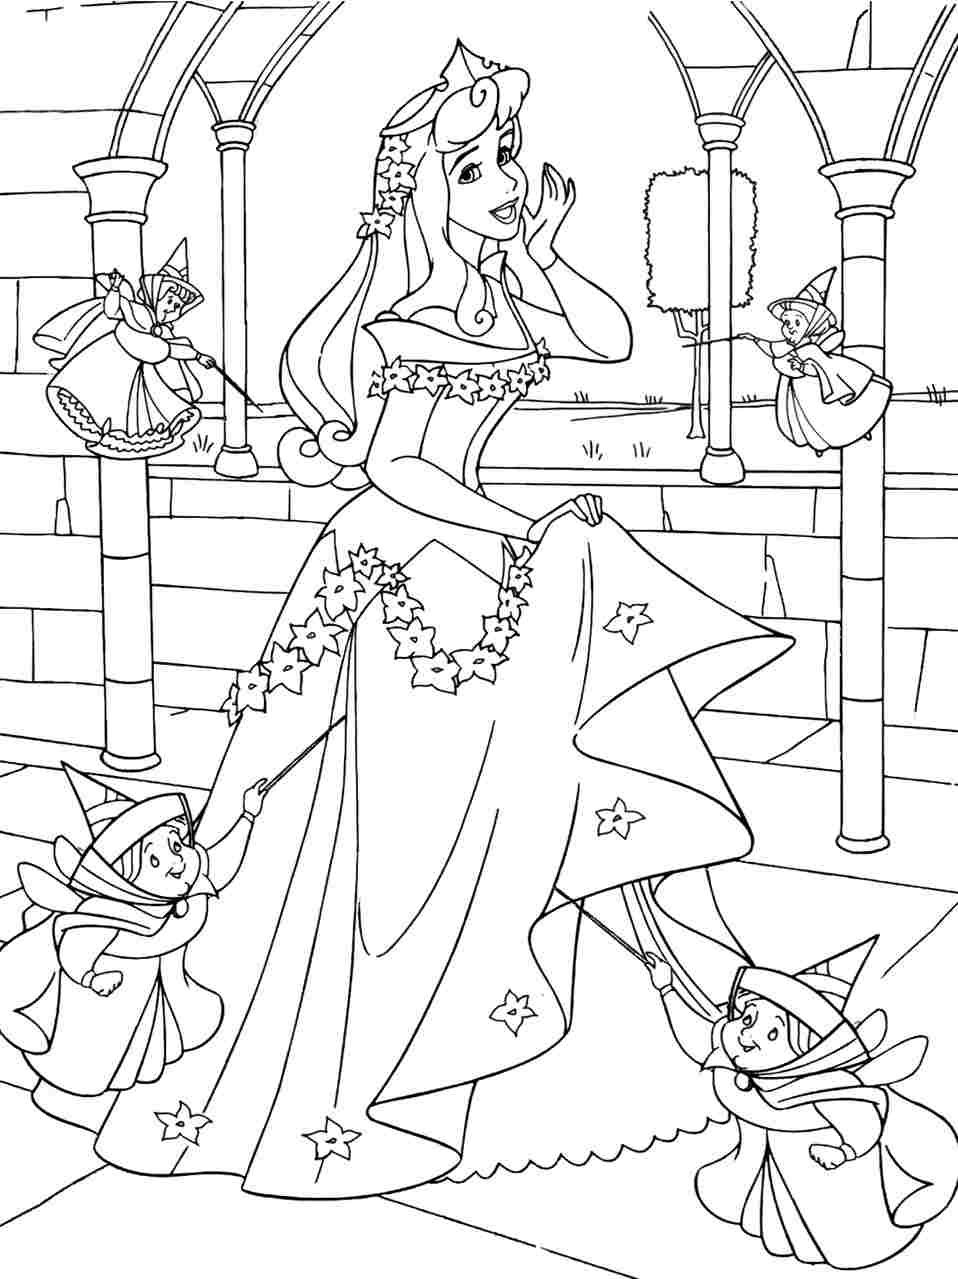 Sleeping Beauty Coloring Pages Print Disney Princess Sleeping Beauty Aurora Colou Princess Coloring Pages Sleeping Beauty Coloring Pages Fairy Coloring Pages